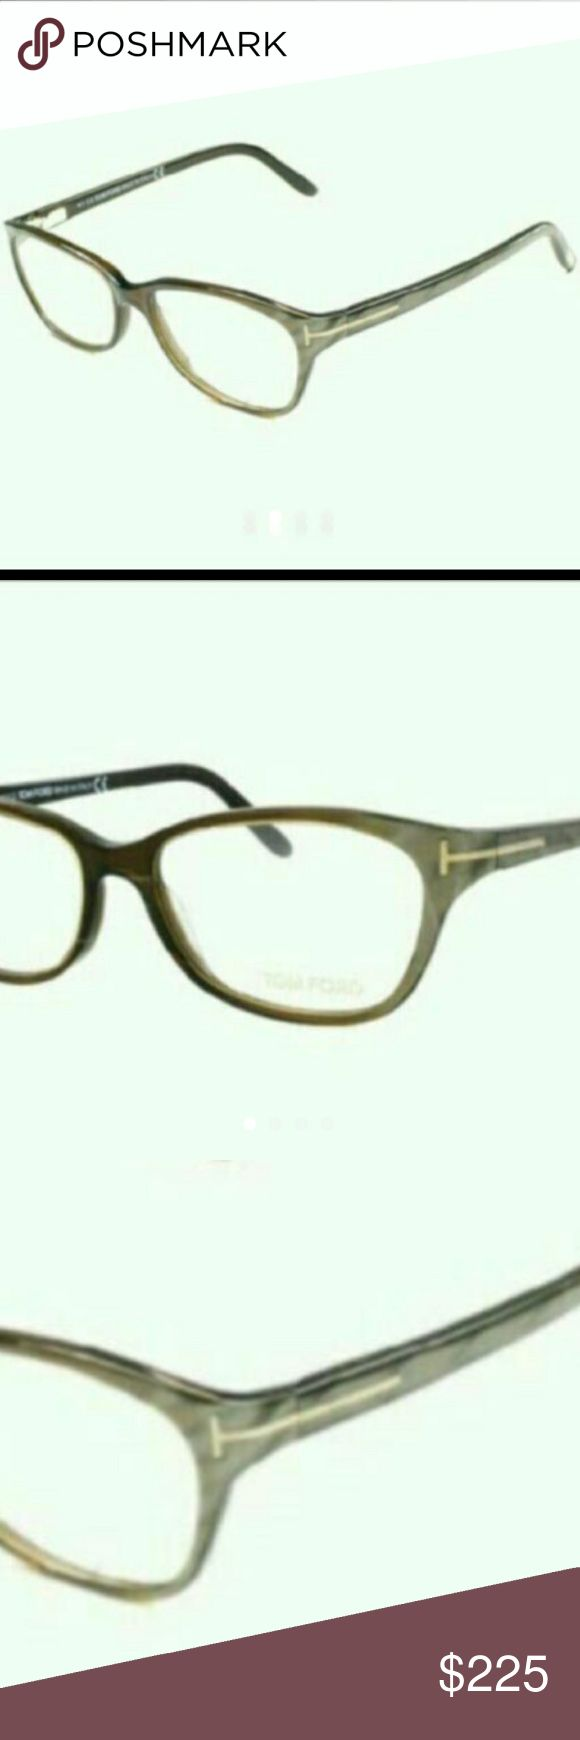 Tom Ford glasses From his 2016 summer collection these frames are beautiful avid unique. With a plastic brownish gray iridescent coloring and a slight cat eye shape and Scarlett lenses. These are great frame for a petite woman . really beautiful outside in  the sun when the colors change and shimmer. Brand new never worn Comes with authentic case cleaning cloth and period of authenticity Tom Ford Accessories Glasses